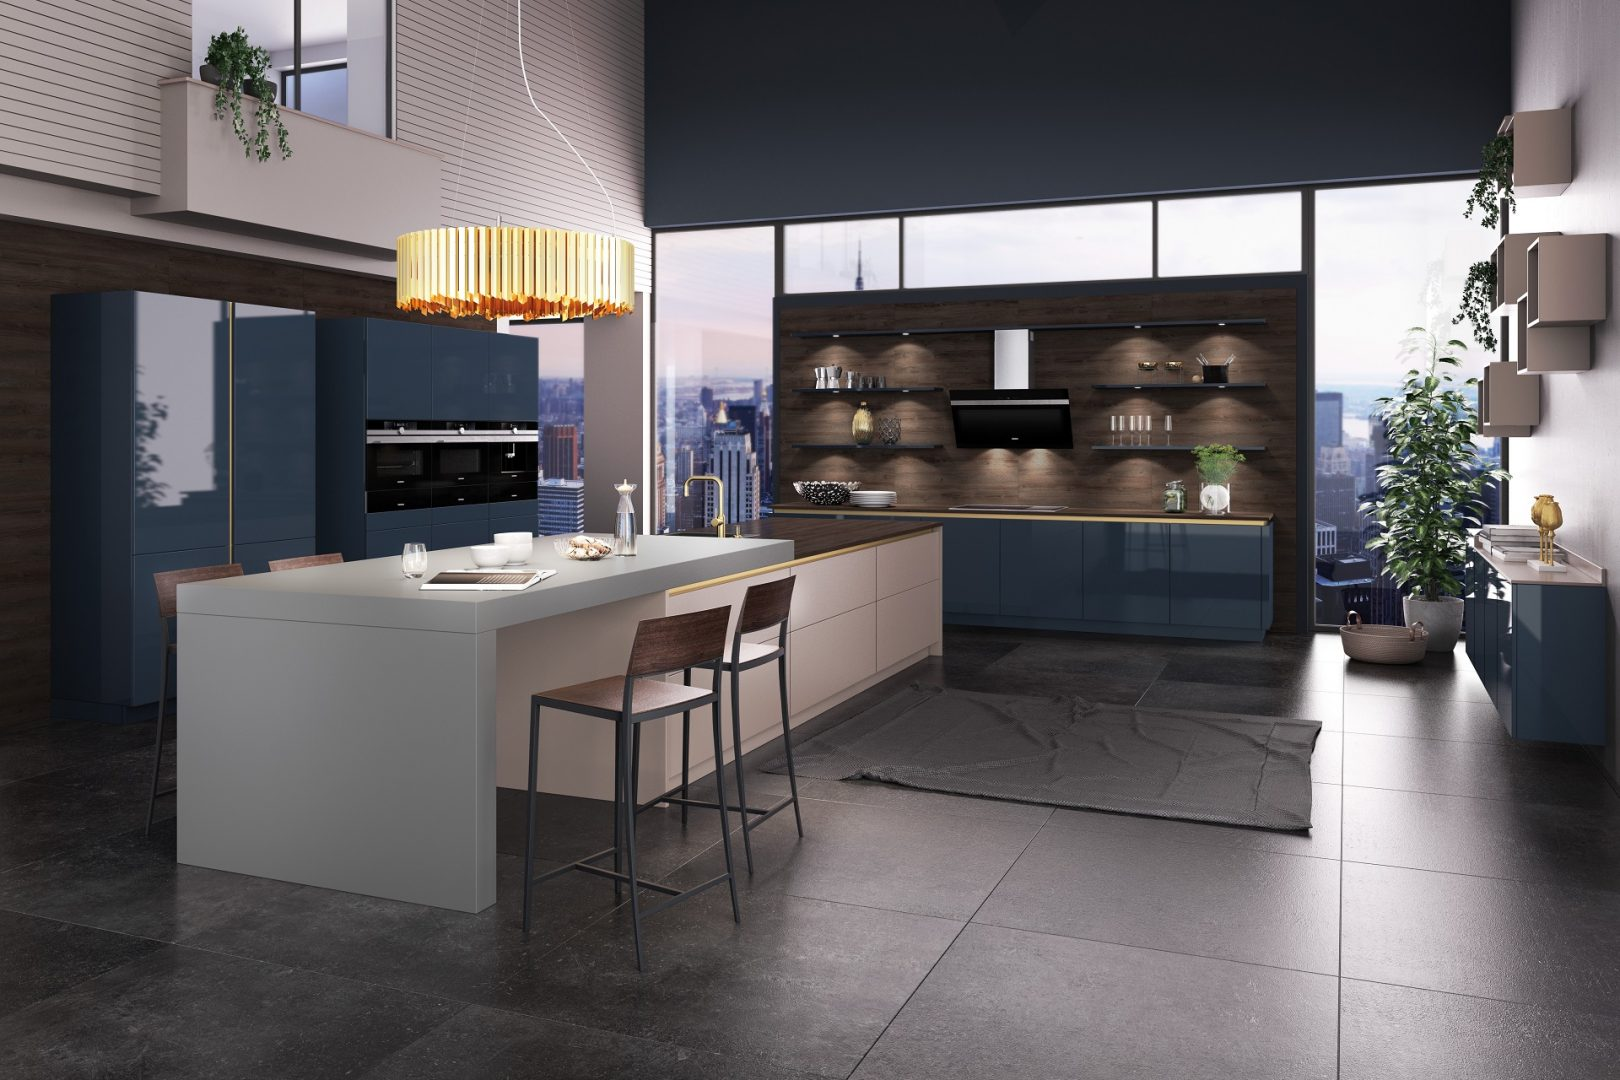 This kitchen by German supplier Brigitte features their CRISTAL range, a high gloss lacquered door in finish 'Steel Blue'.